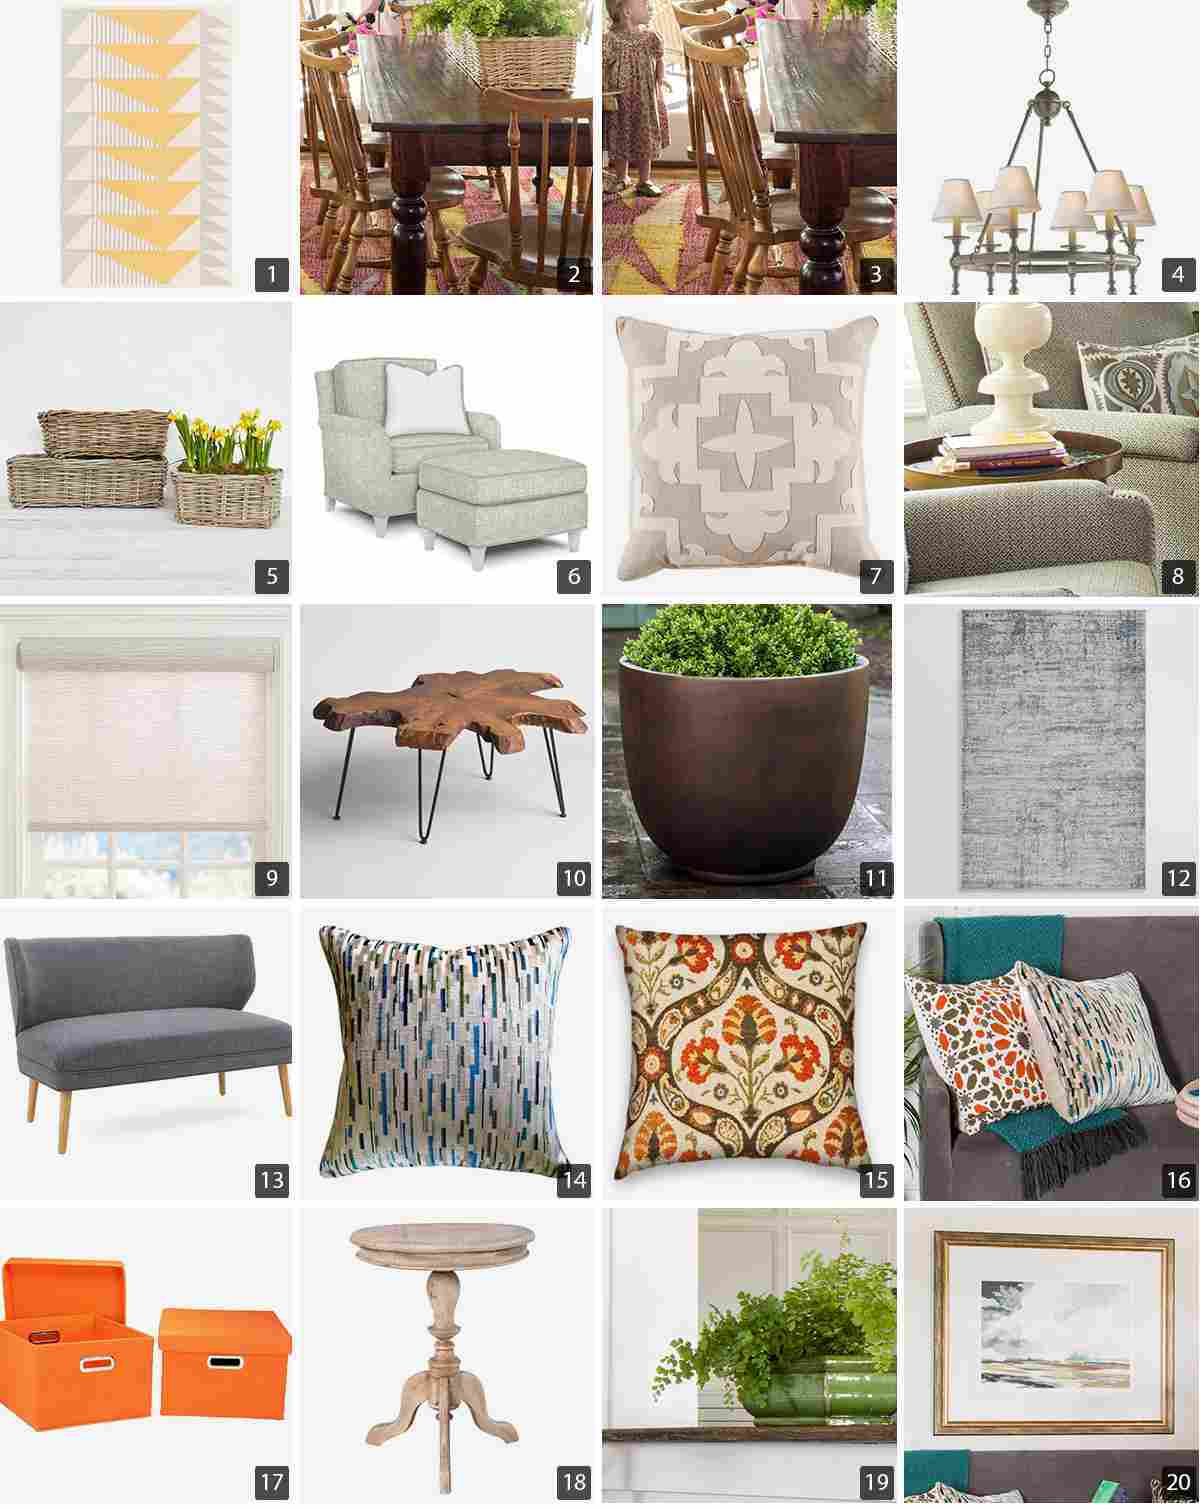 Collage of home products including a dining table, throw pillows, and seating furniture photo